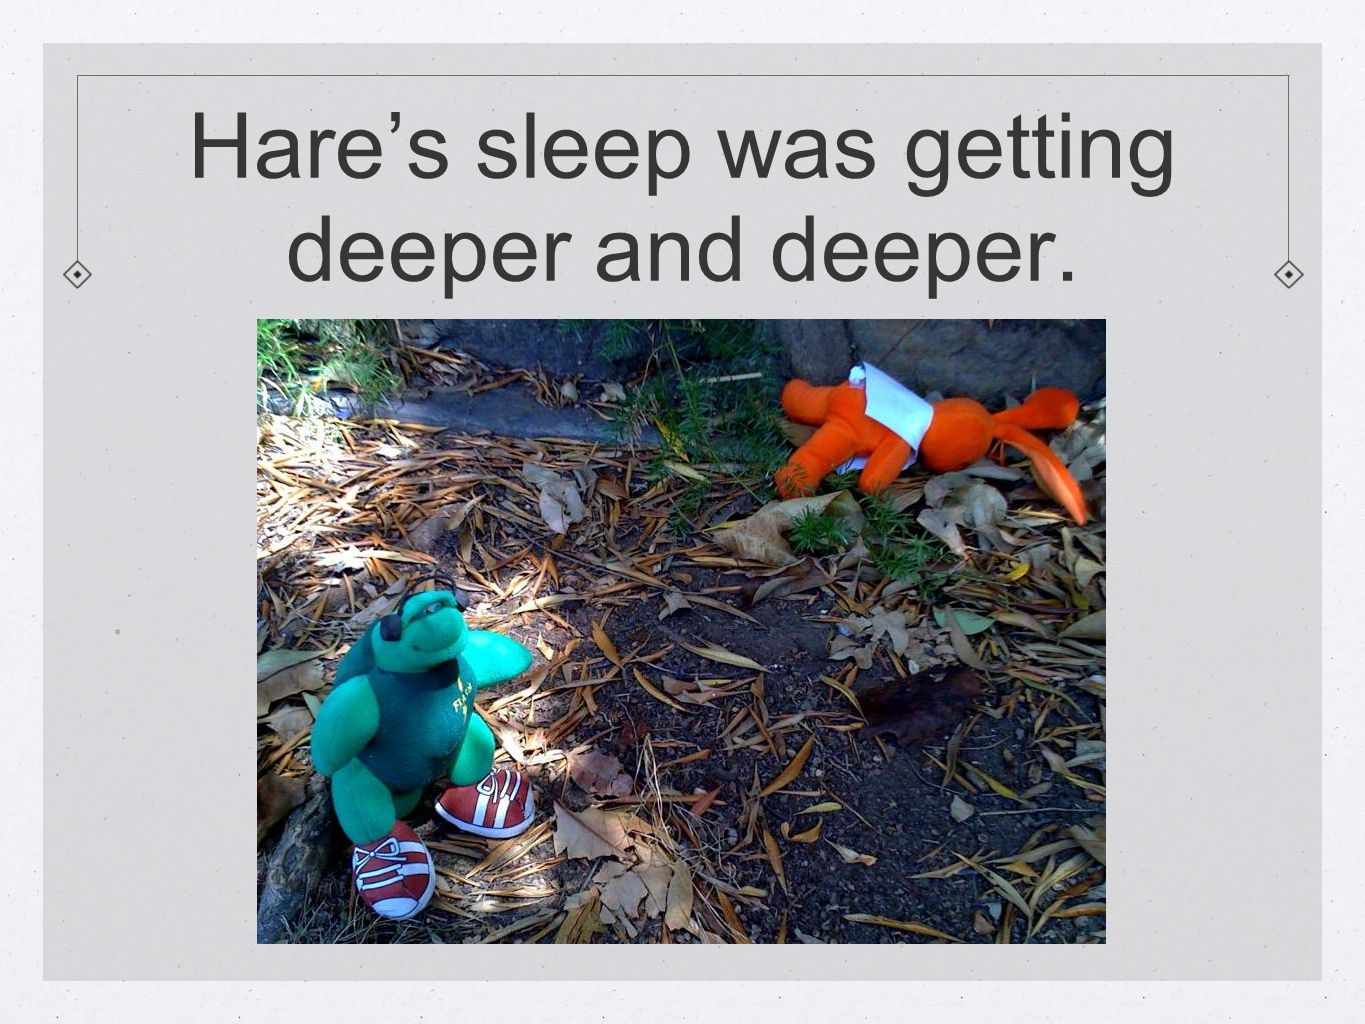 Hare's sleep was getting deeper and deeper..